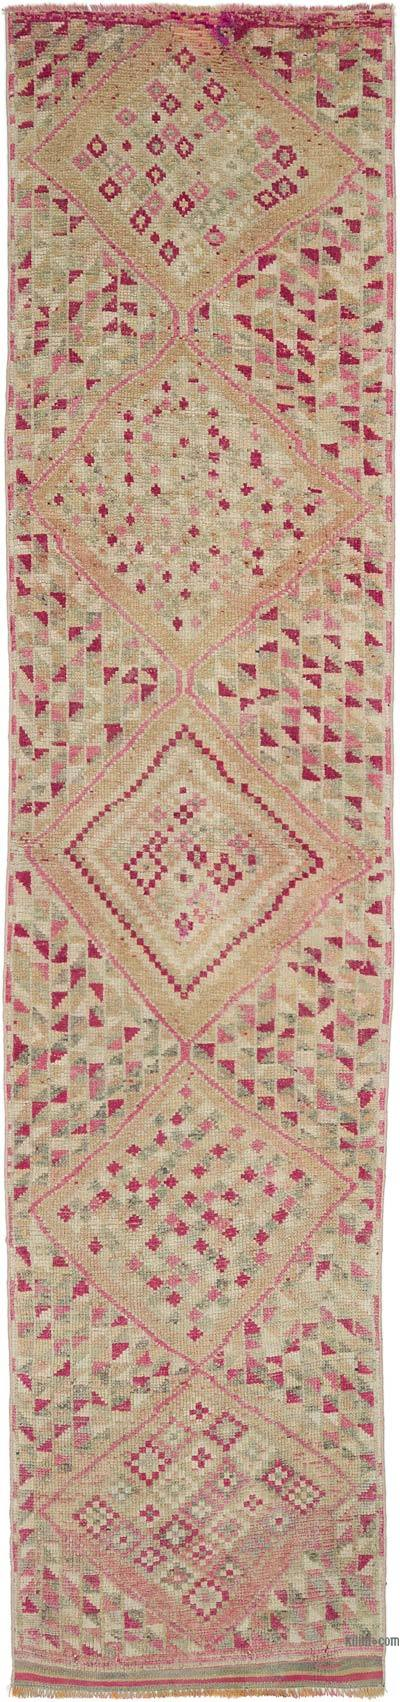 "Vintage Turkish Runner Rug - 12' 10"" x 2' 11"" (154 in. x 35 in.)"